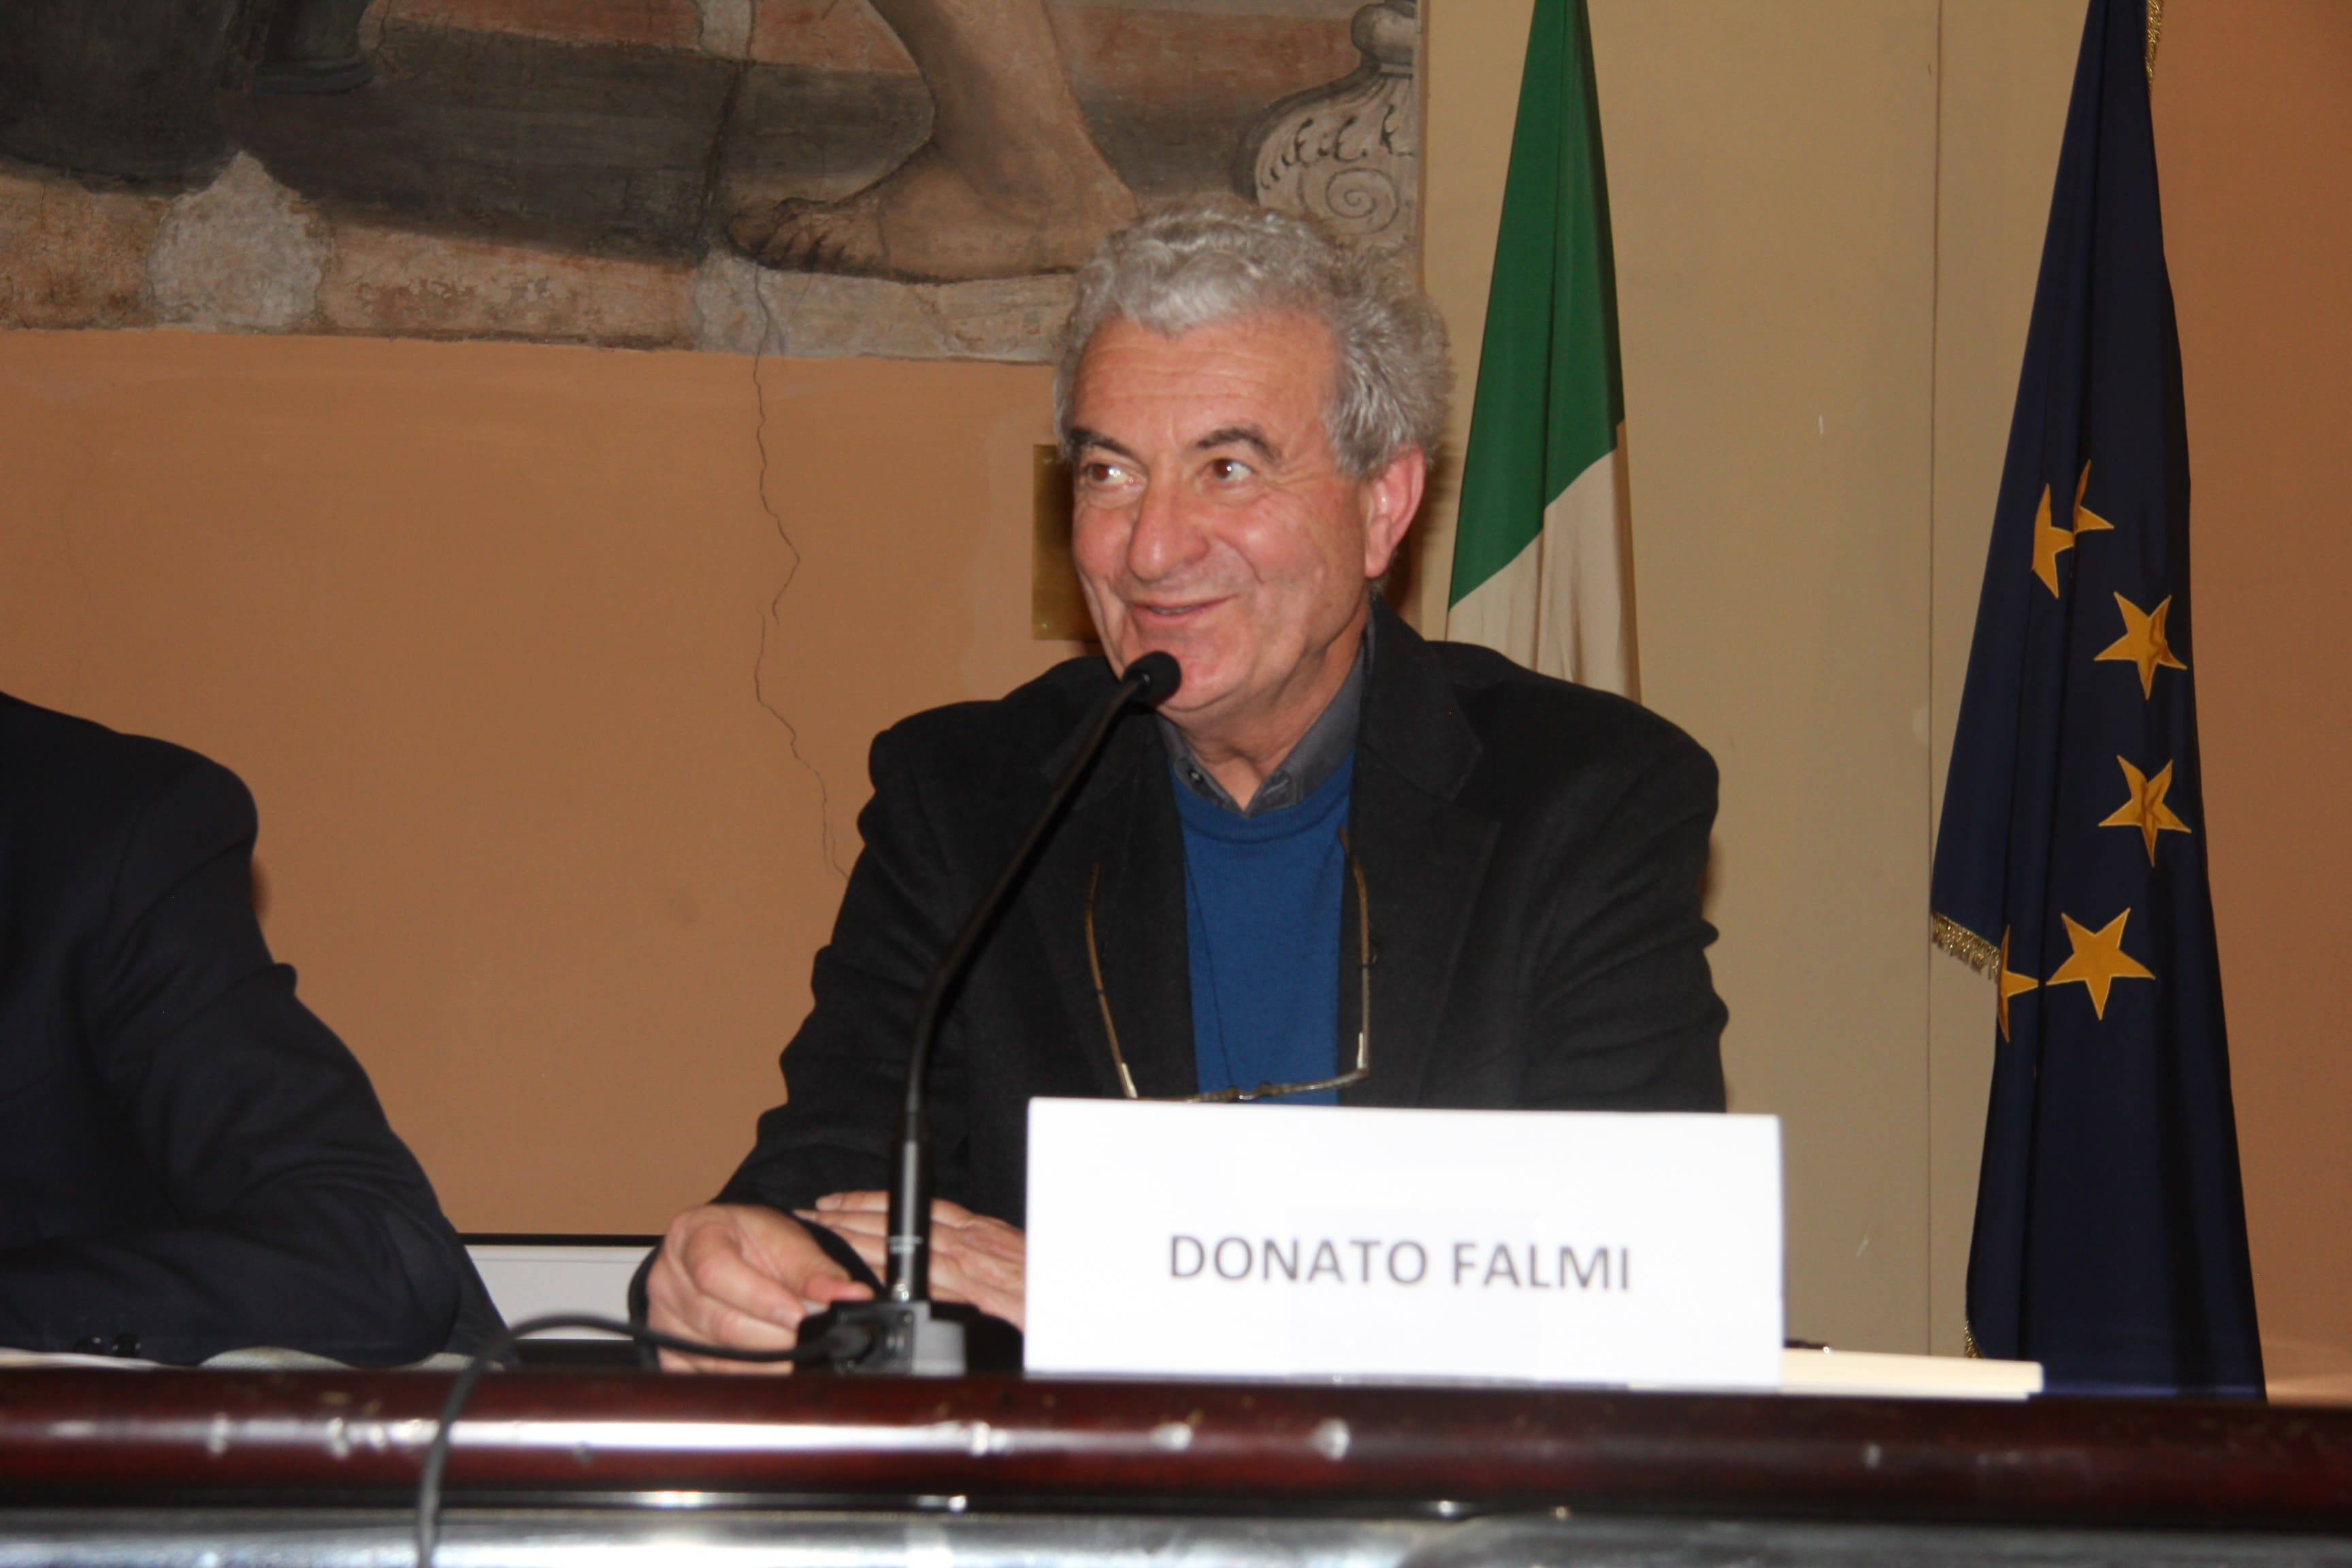 Interview with Donato Falmi